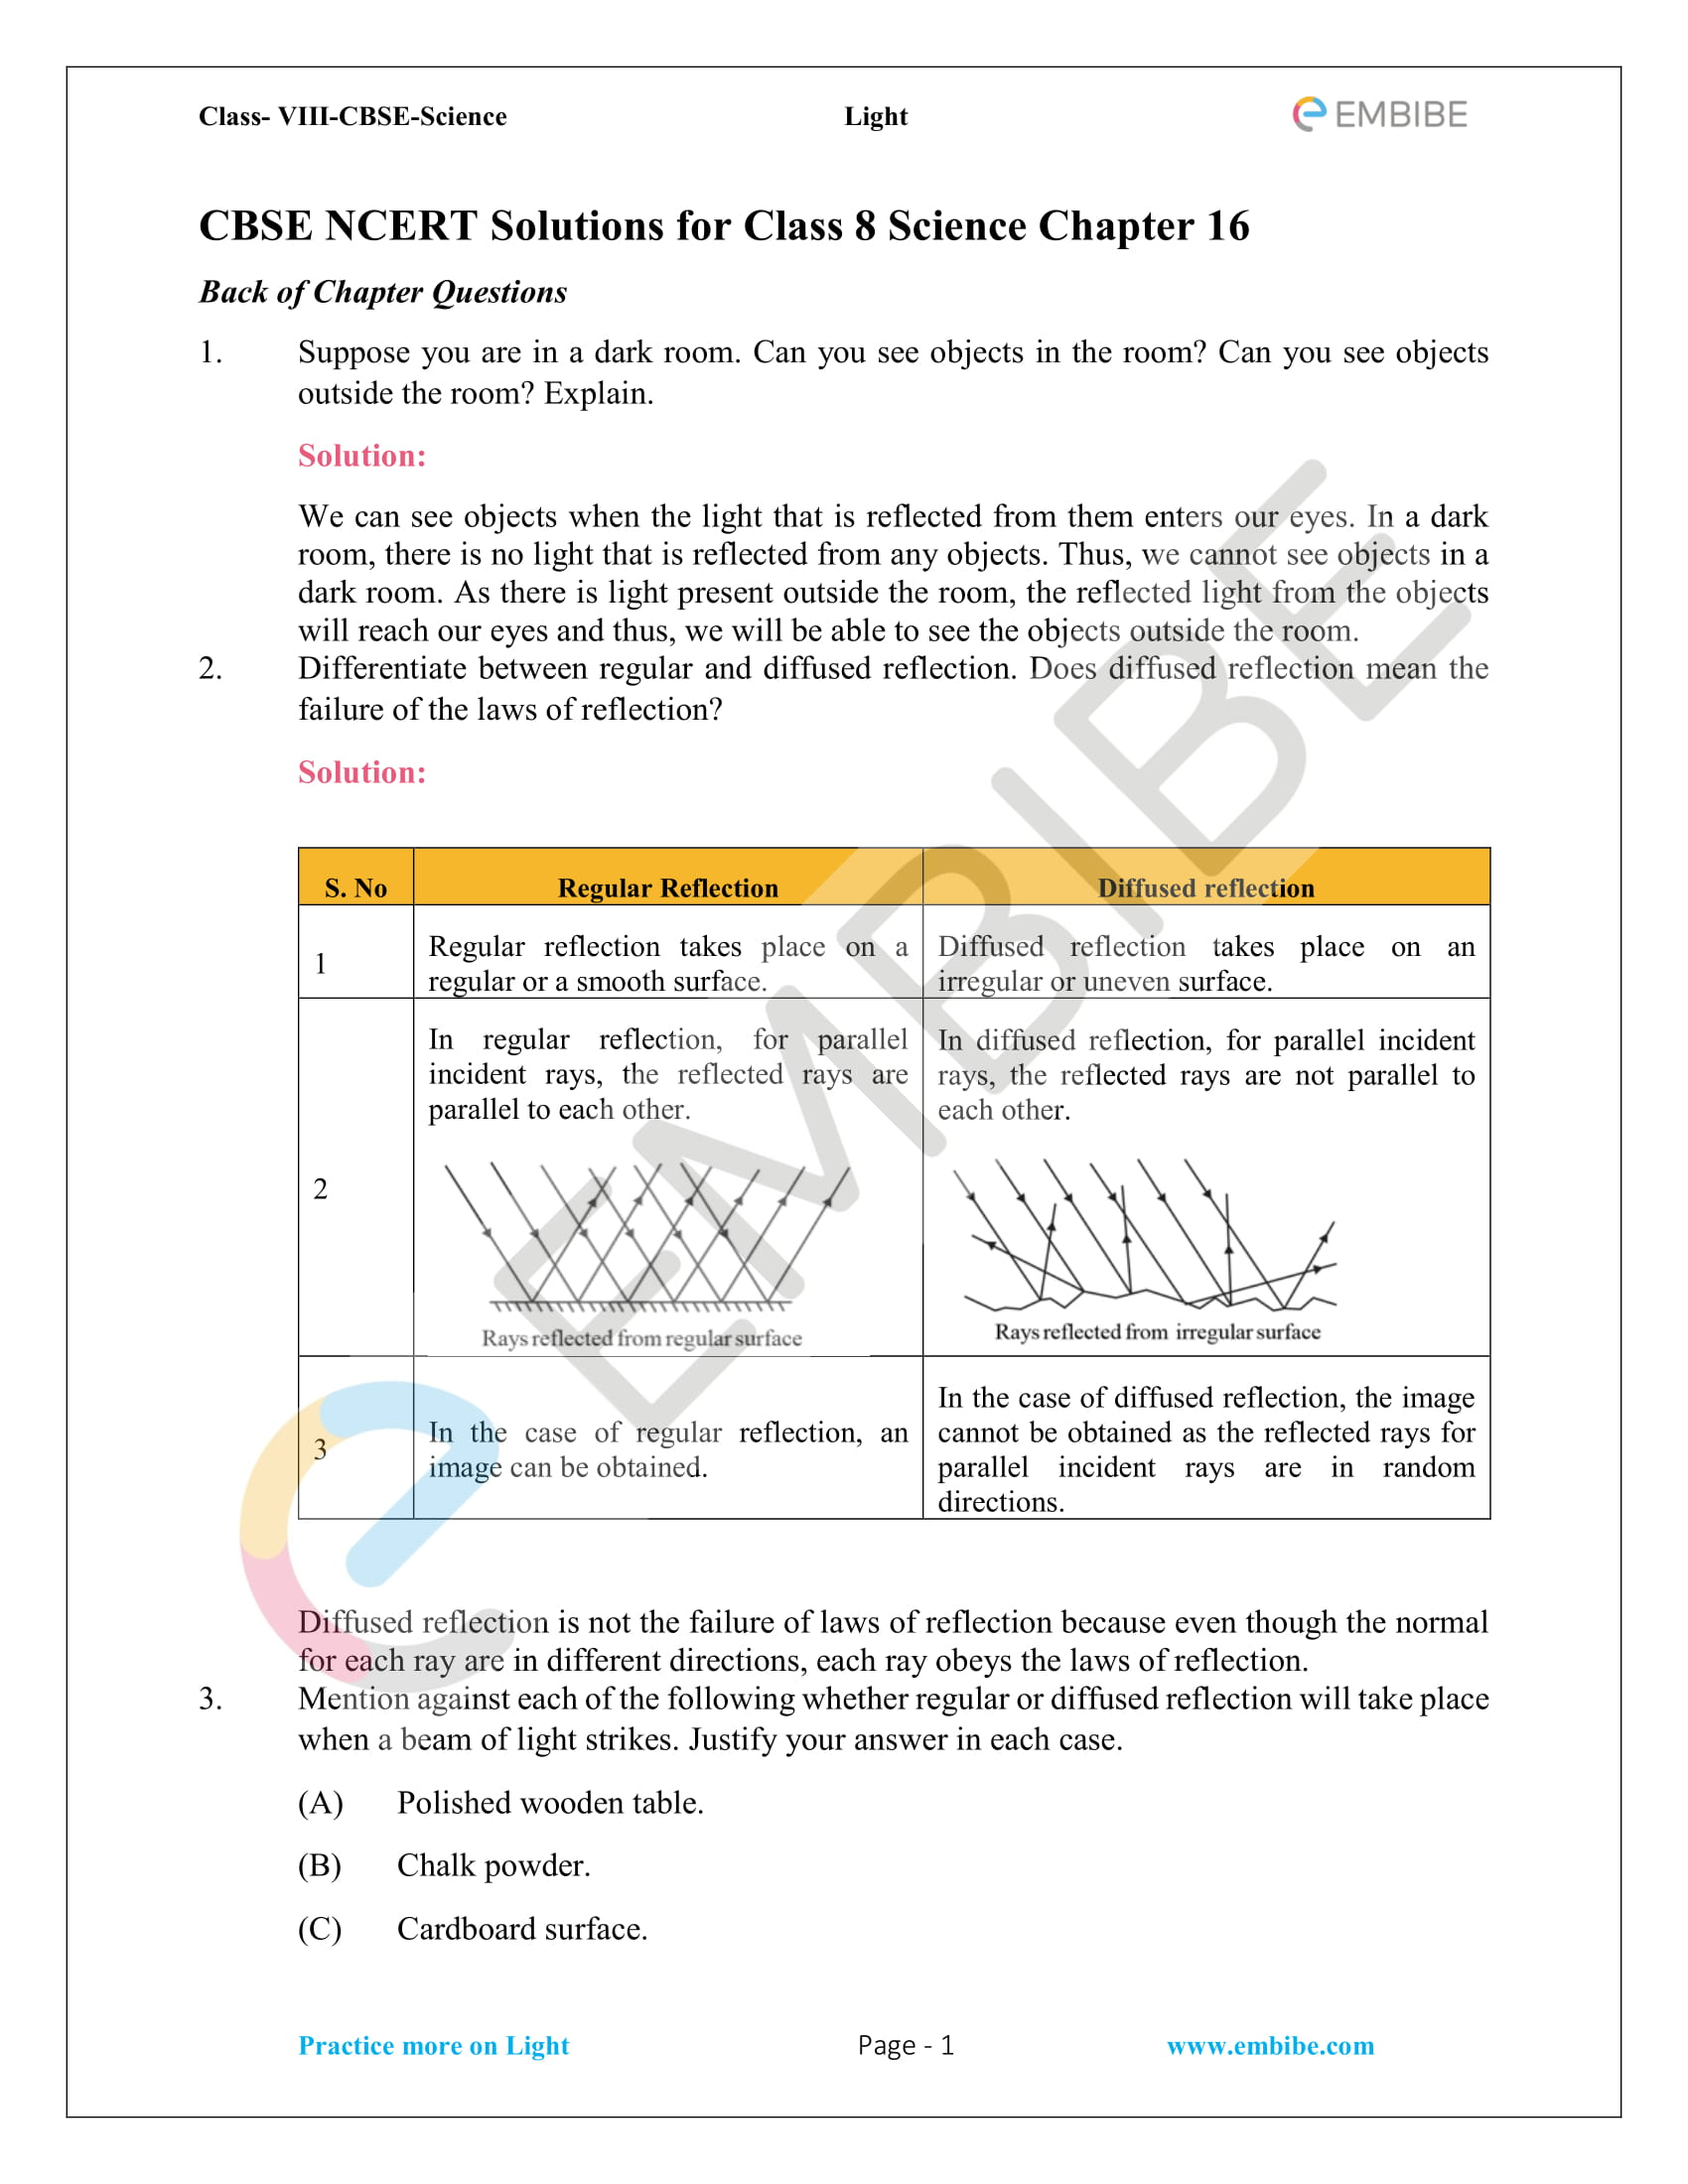 Help with management admission paper